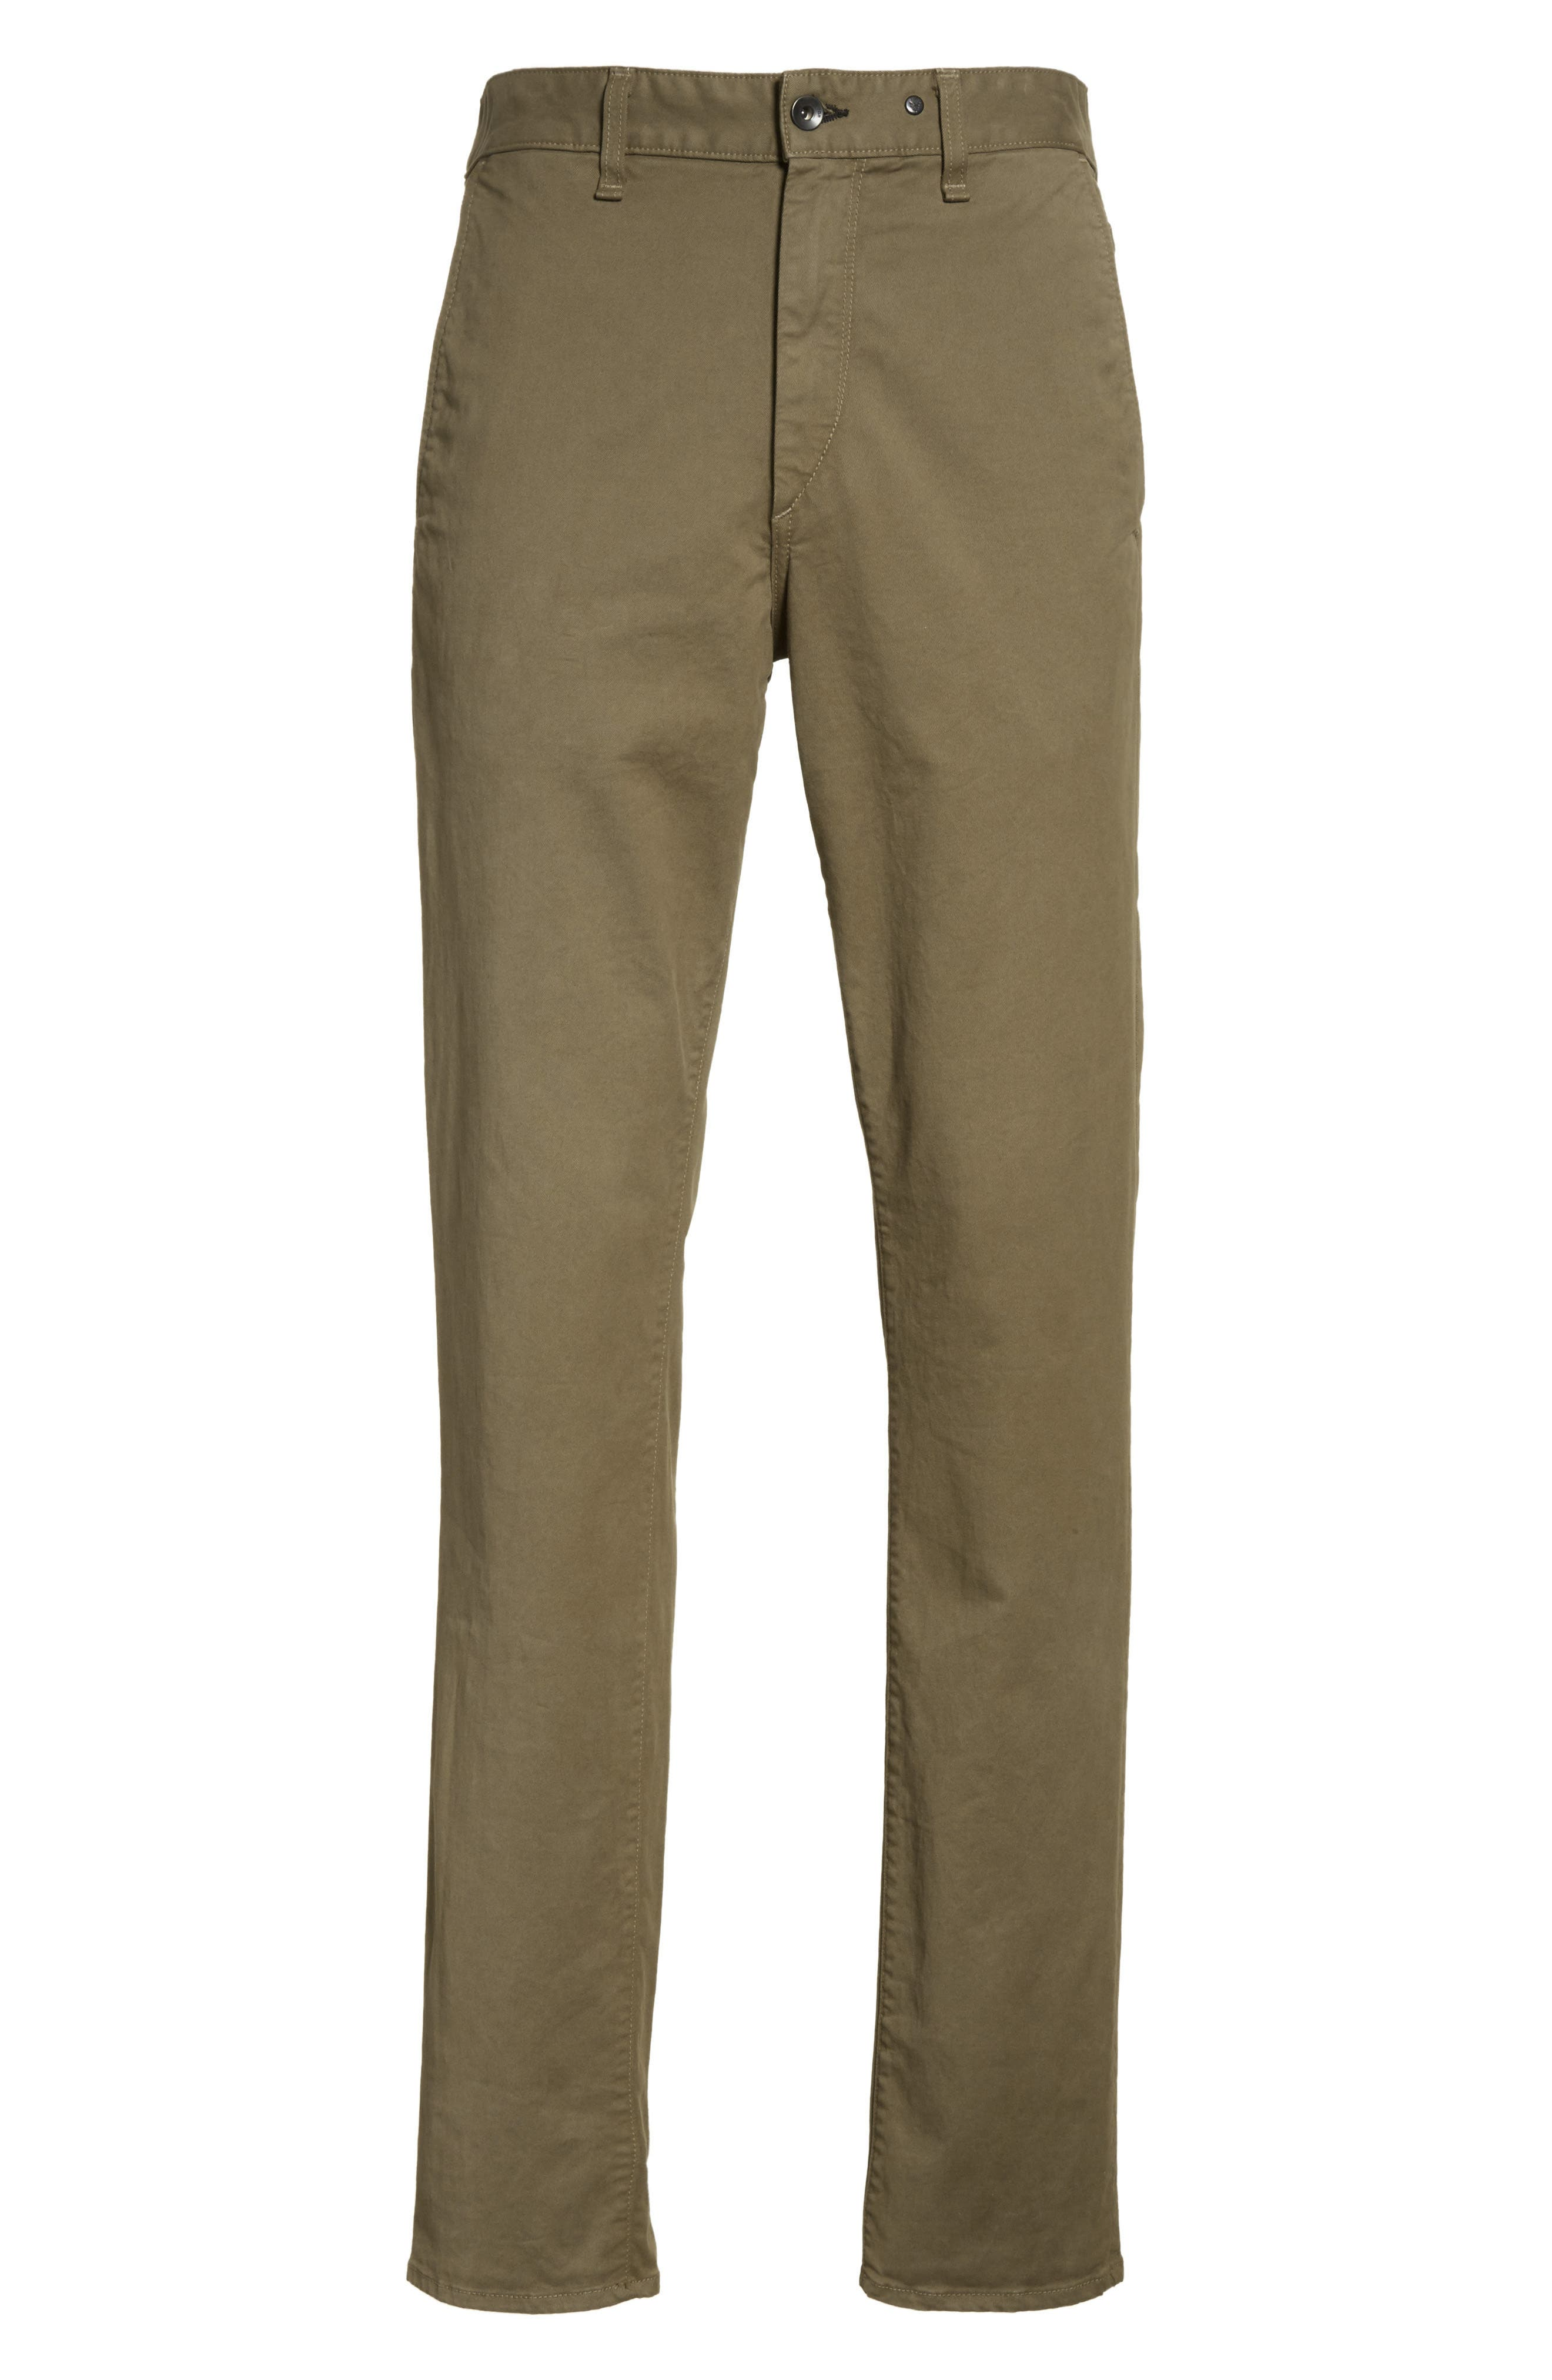 Fit 2 Chinos,                             Alternate thumbnail 6, color,                             ARMY